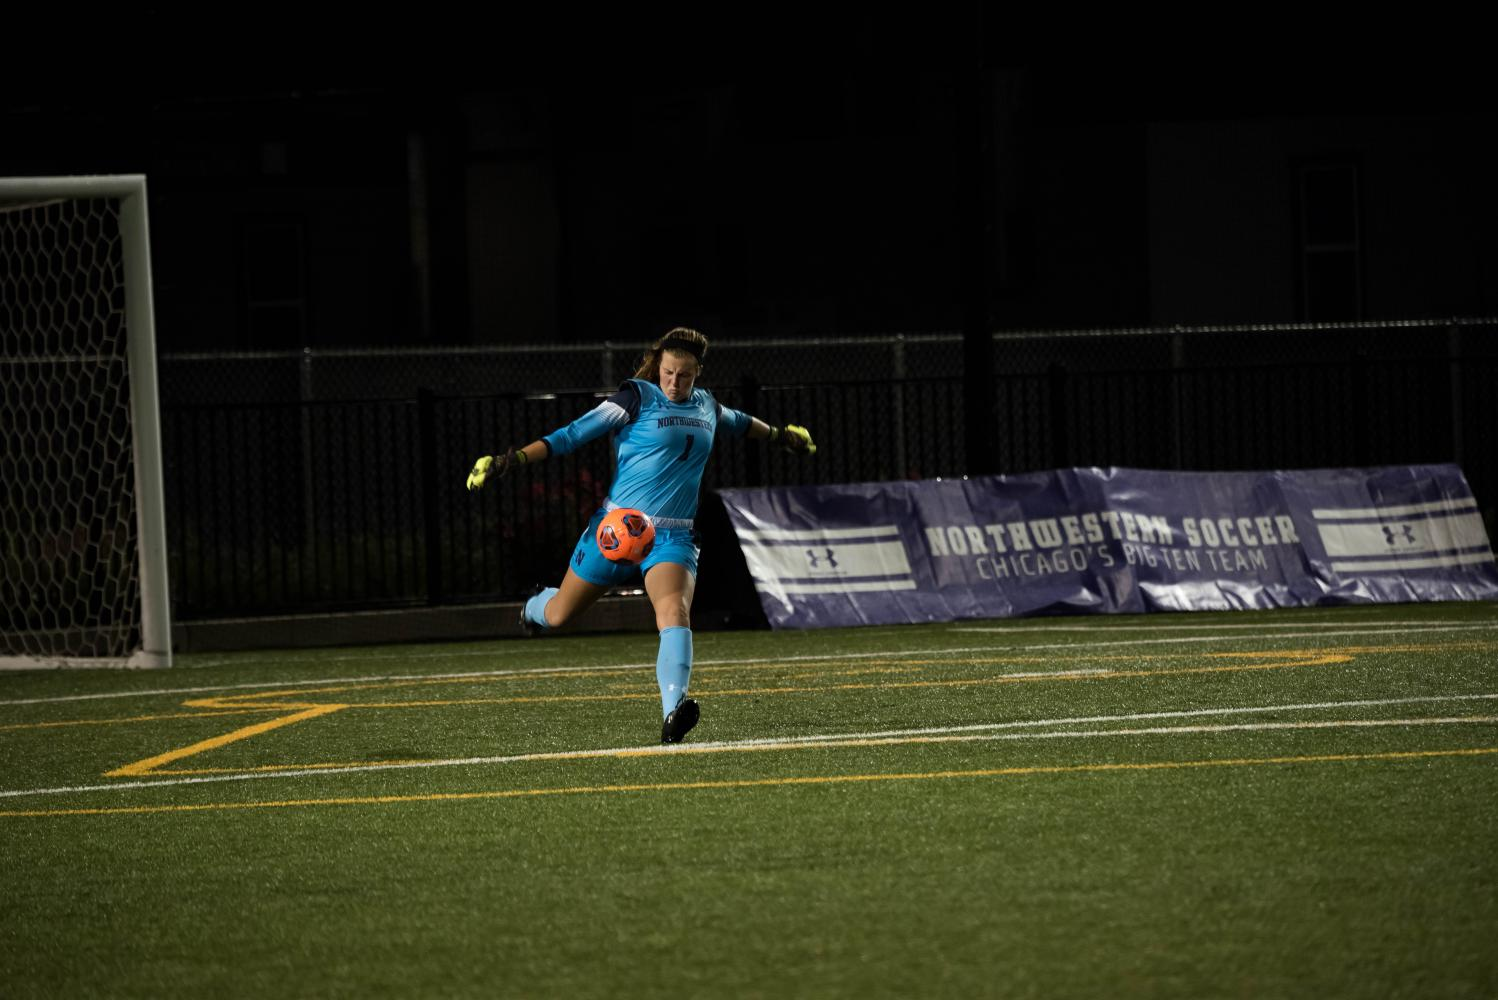 Lauren Clem kicks the ball upfield in a game last year. Clem's clean sheet helped the Wildcats to a season-opening win over DePaul on Friday.